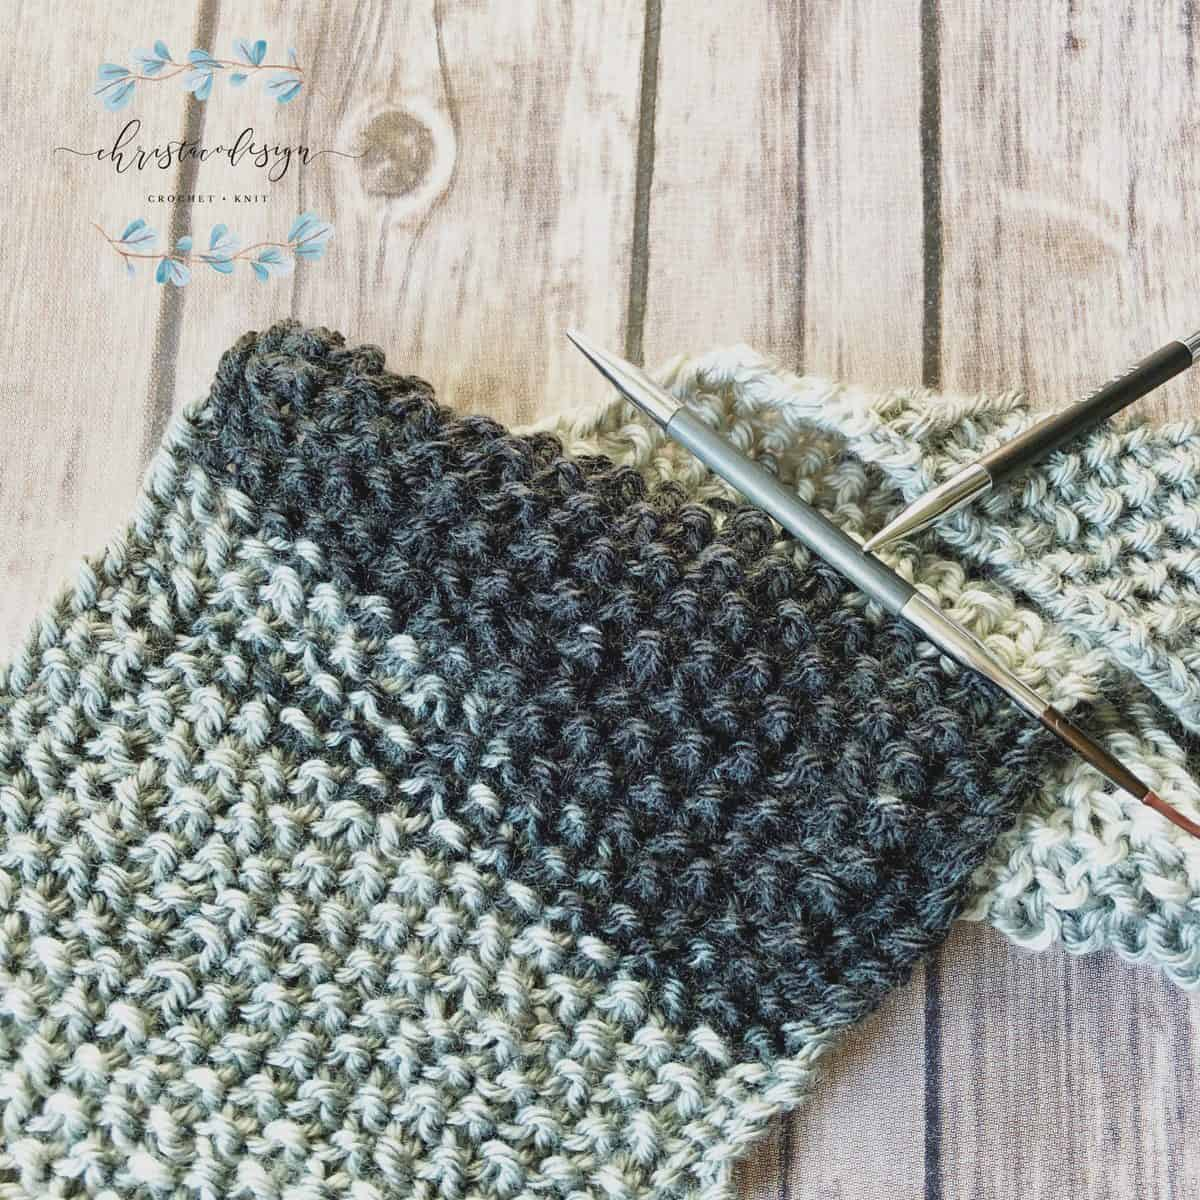 picture of textured knit scarf on knitting needles